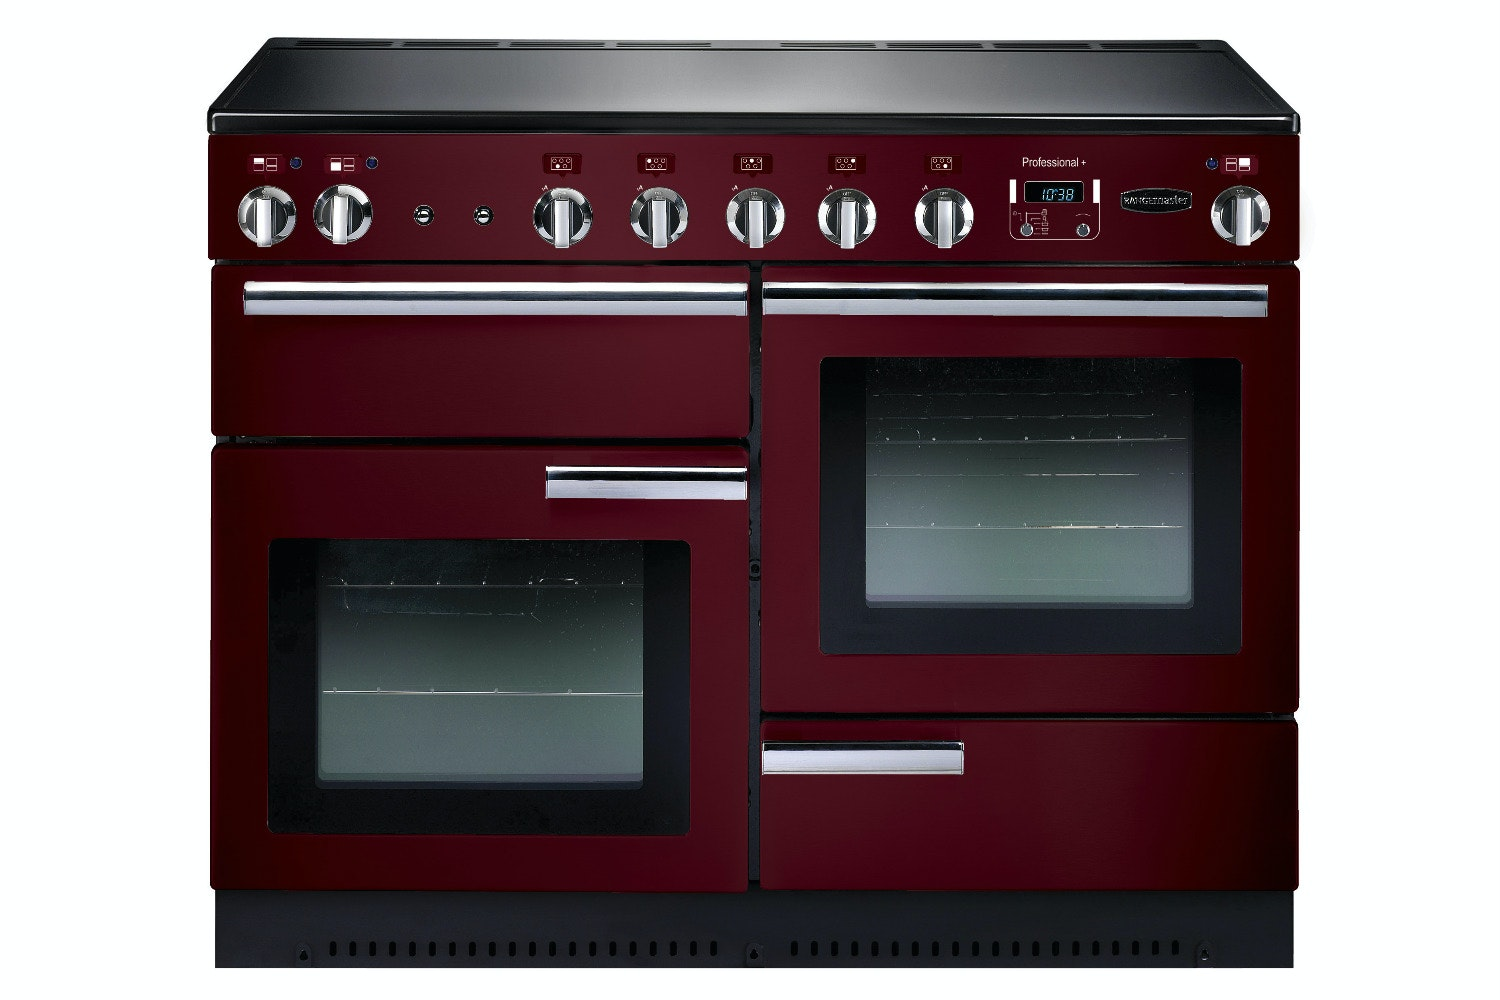 rangemaster 110 cm induction range cooker cranberry red PROP110EICY/C